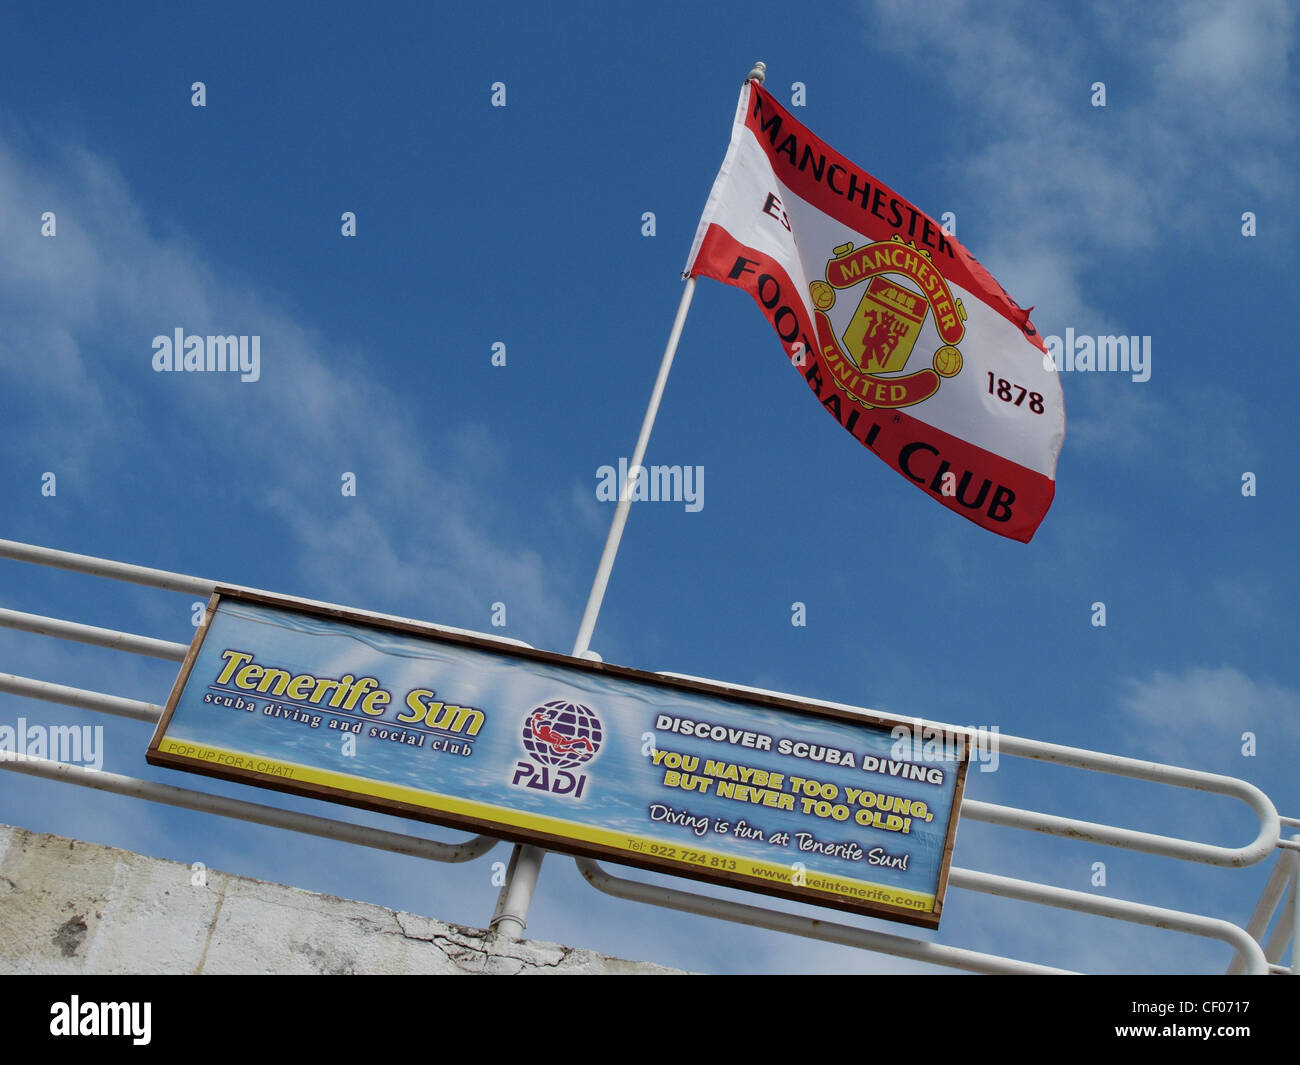 A Manchester United supporters flag flies from a railing above a beach near Playa de Las Americas, Tenerife, Canary - Stock Image